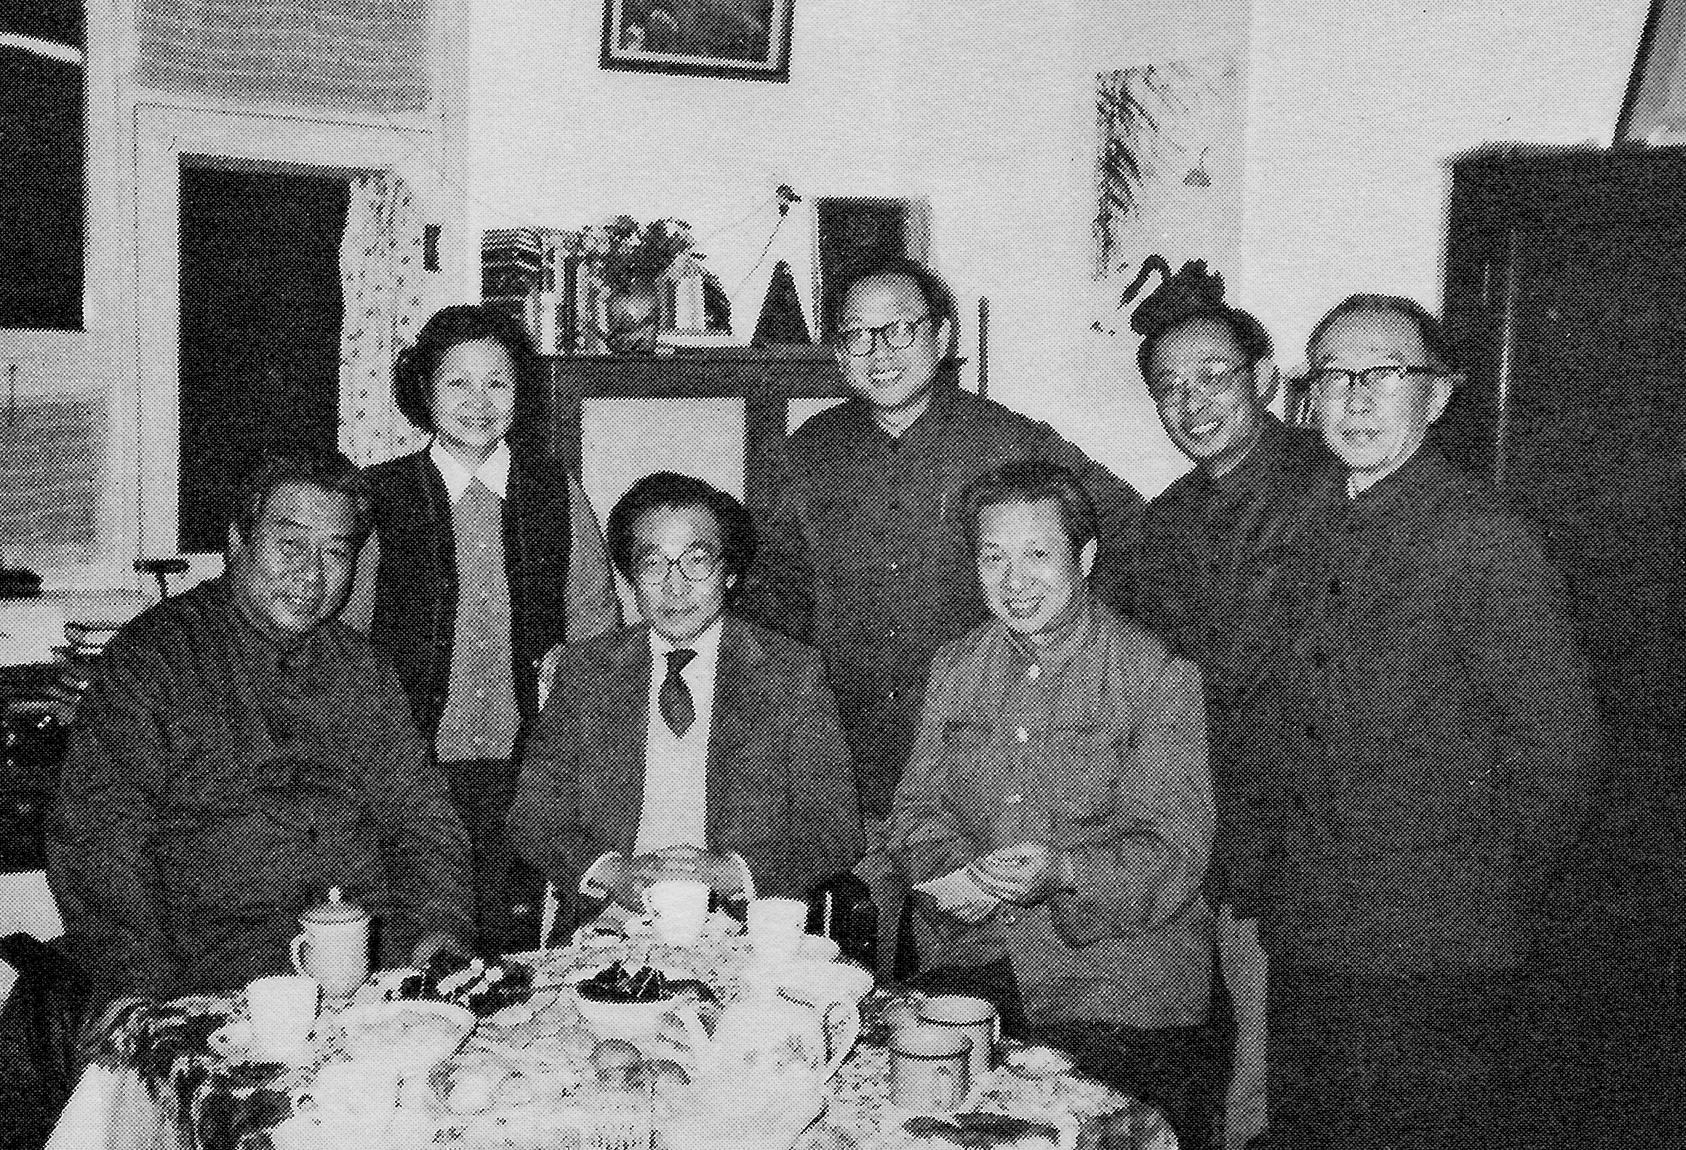 Members of the Central Philharmonic Orchestra gather here at the home of conductor Li Delun. Chou Wen-chung is seated between conductors Li Delun (left) and Han Zhongjie (right). Standing from left to right are Wu Meihe, Luo Qing, Zhu Xinren, and Meng Zhaolin.